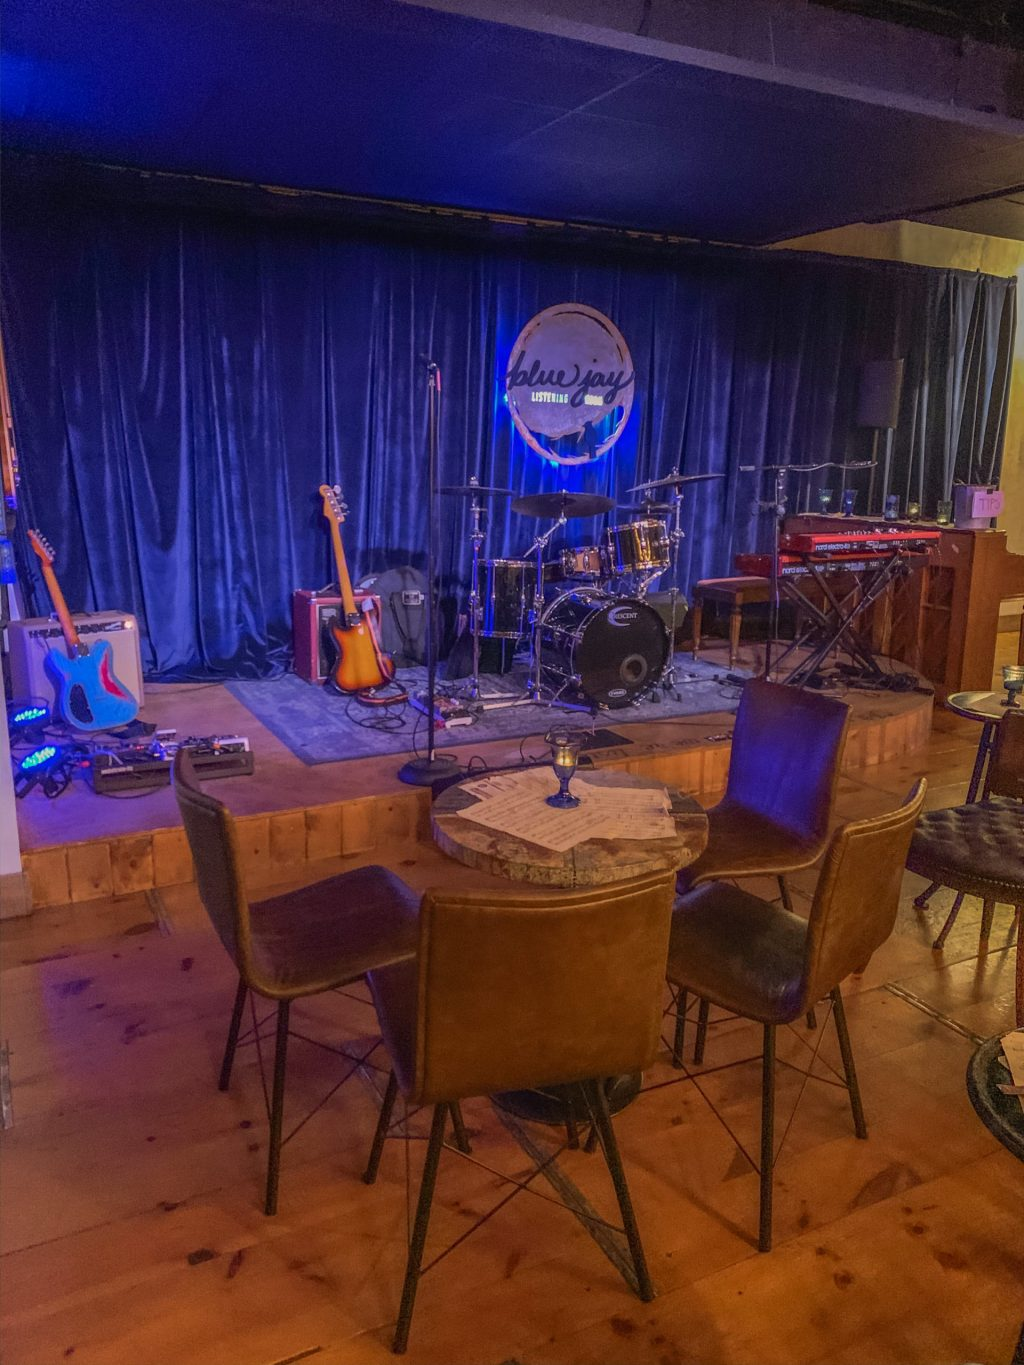 With amazing restaurants to try, and fun things to do like going to the Blue Jay Listening Room, Jacksonville, Florida should be on your must-visit list. Sharing a detailed travel guide #jacksonville